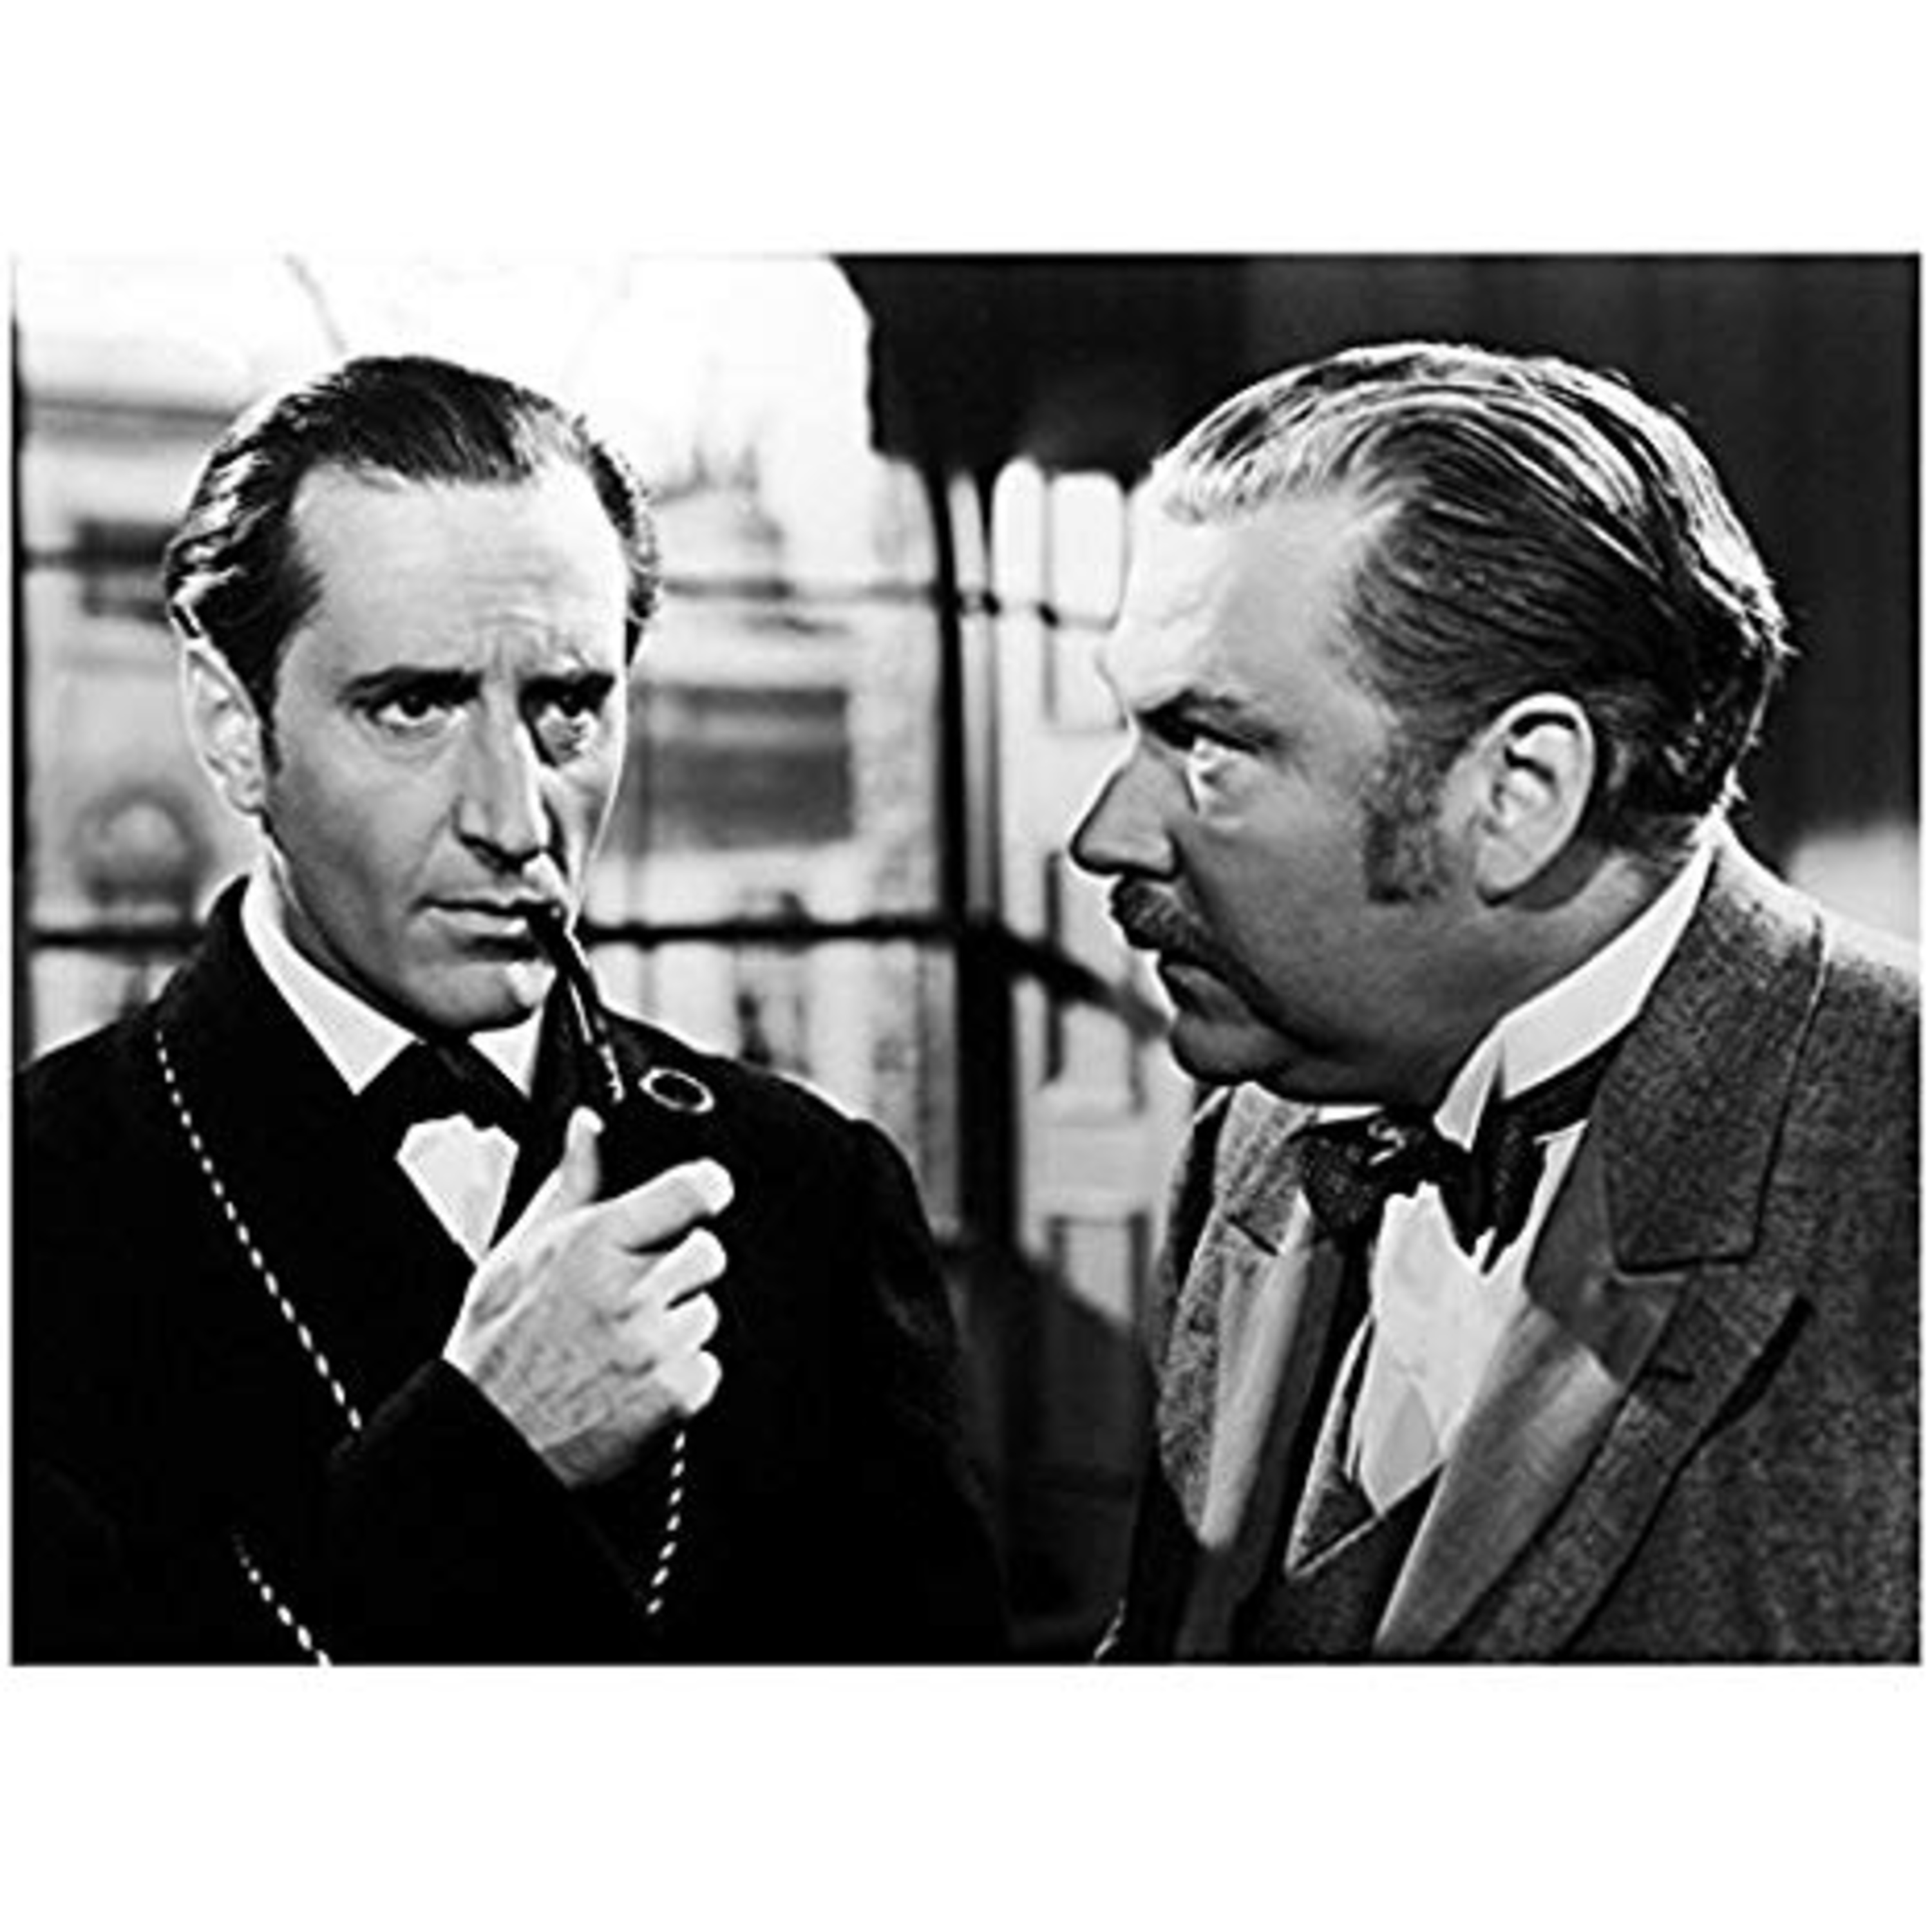 The New Adventures of Sherlock Holmes - Featuring Basil Rathbone and Nigel Bruce - The Speckled Band - Adventure of the Missing Submarine Plans